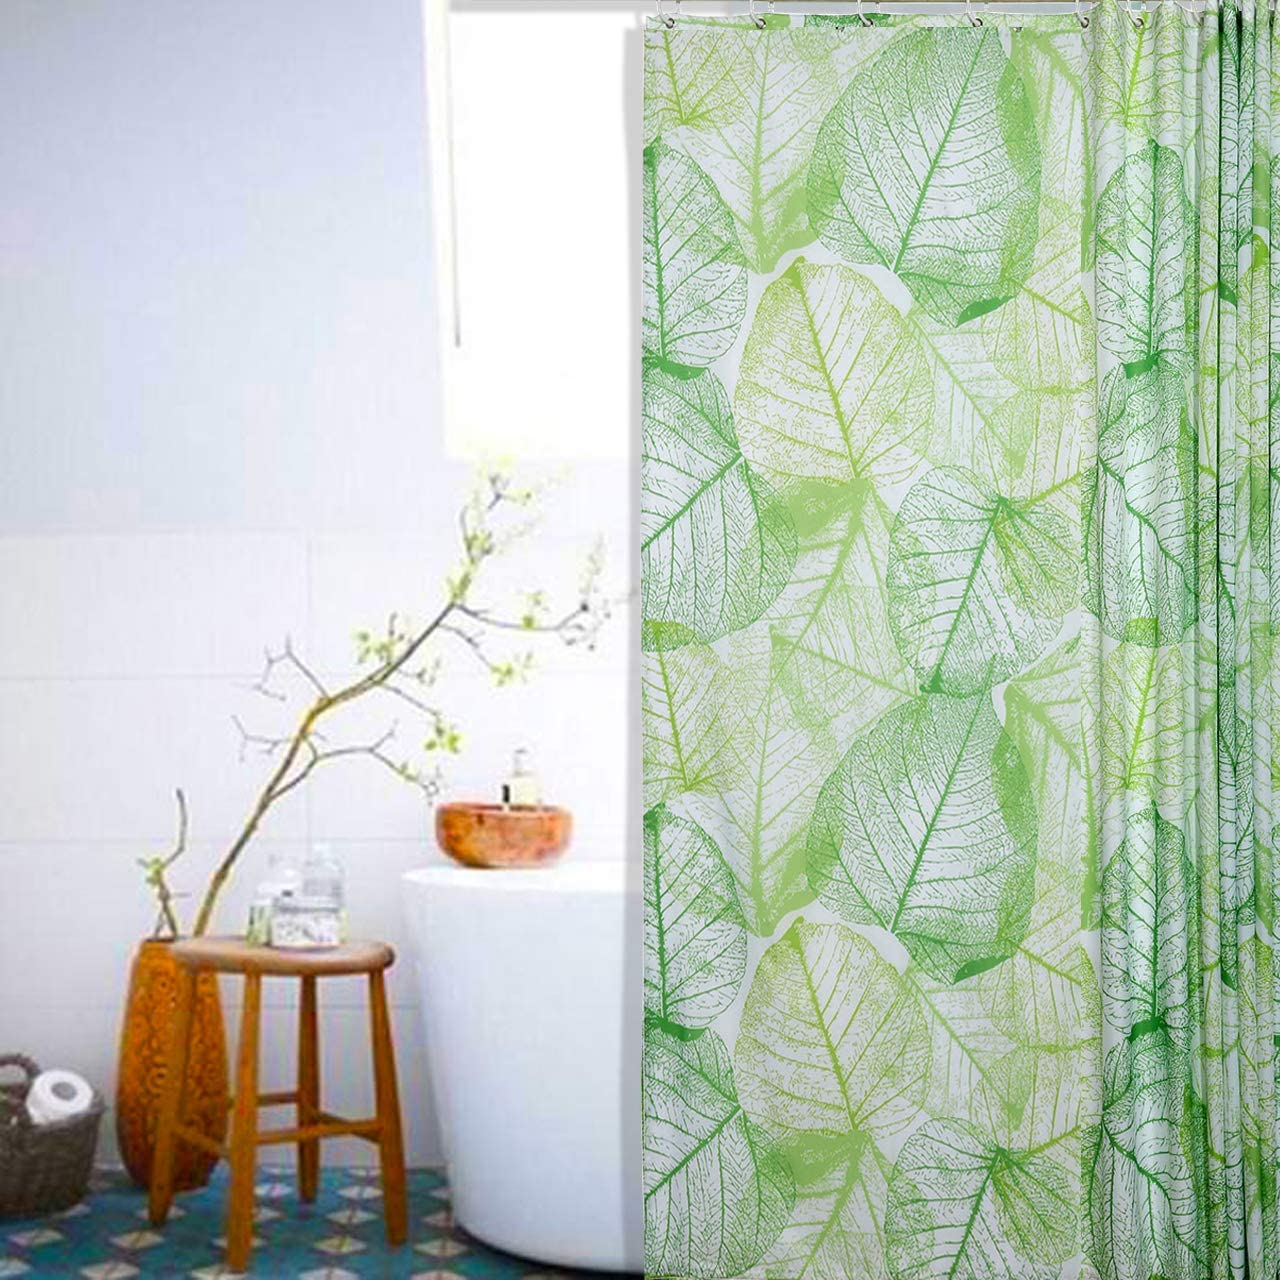 """CozyCabin Light Green Leaves Vein Waterproof Bathroom Shower Curtain, Nature Featured Tree Leaves Vein Decor 71"""" X 71"""" Digital Printing Polyester Fabric Curtain, Included Hooks"""